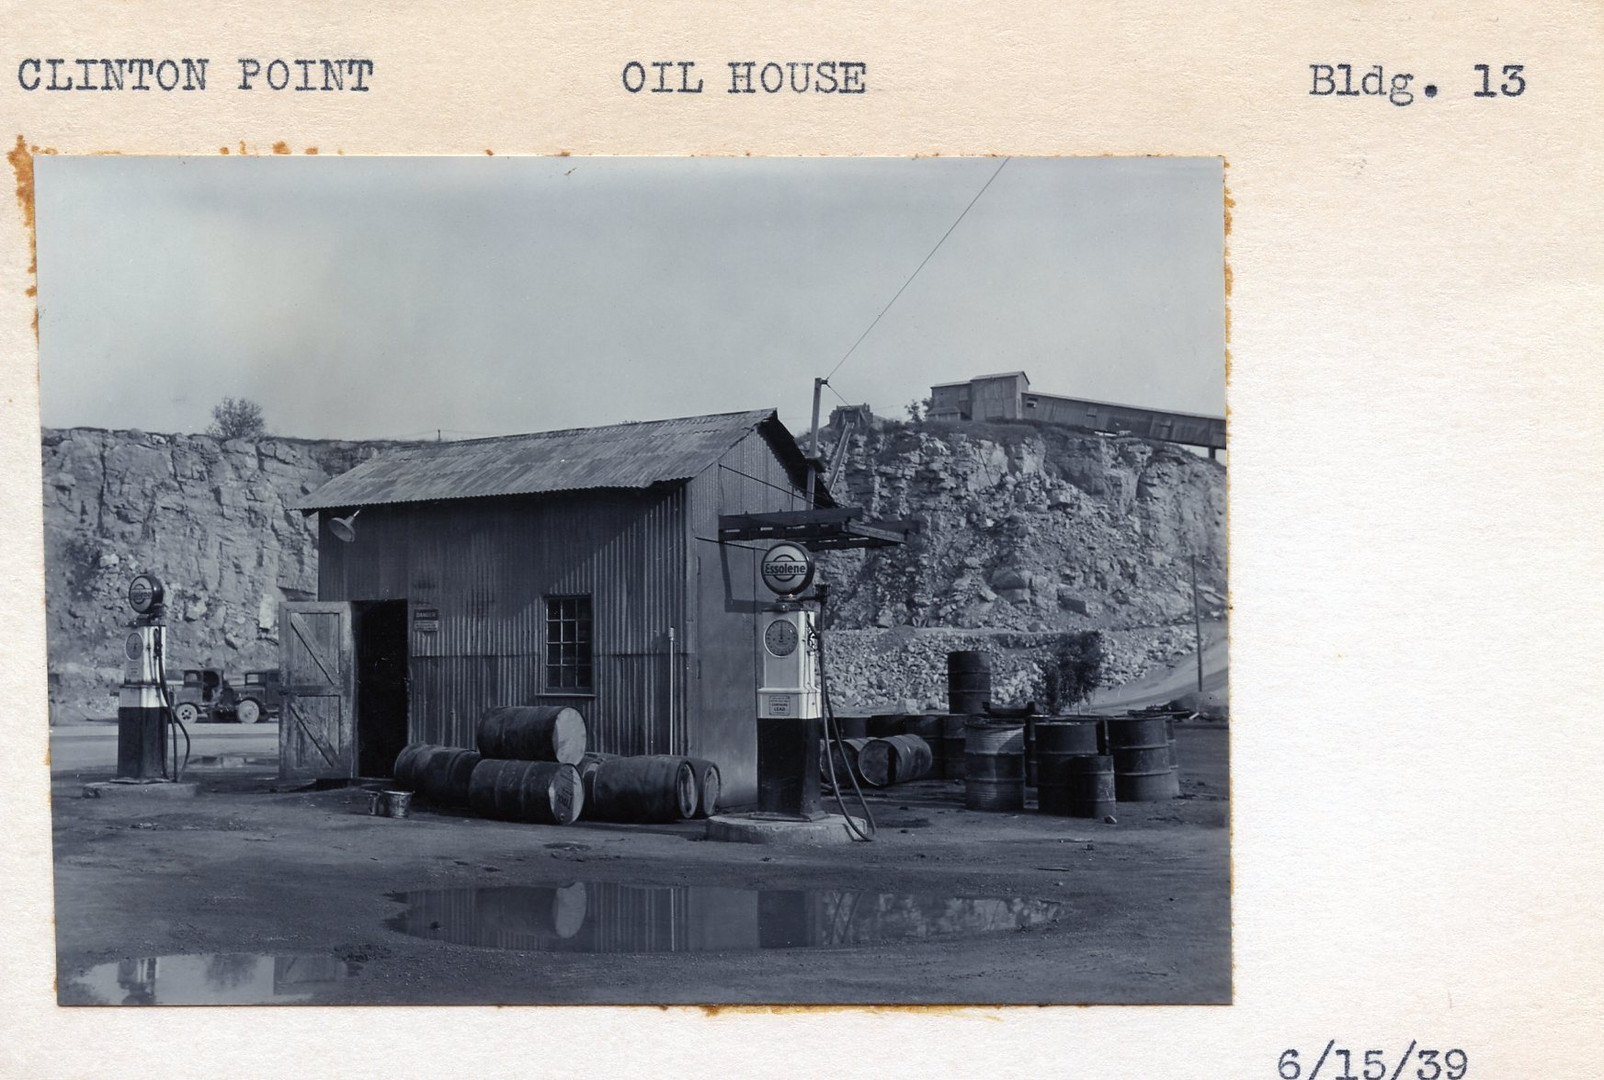 Oil House, Building #13, 6/15/39